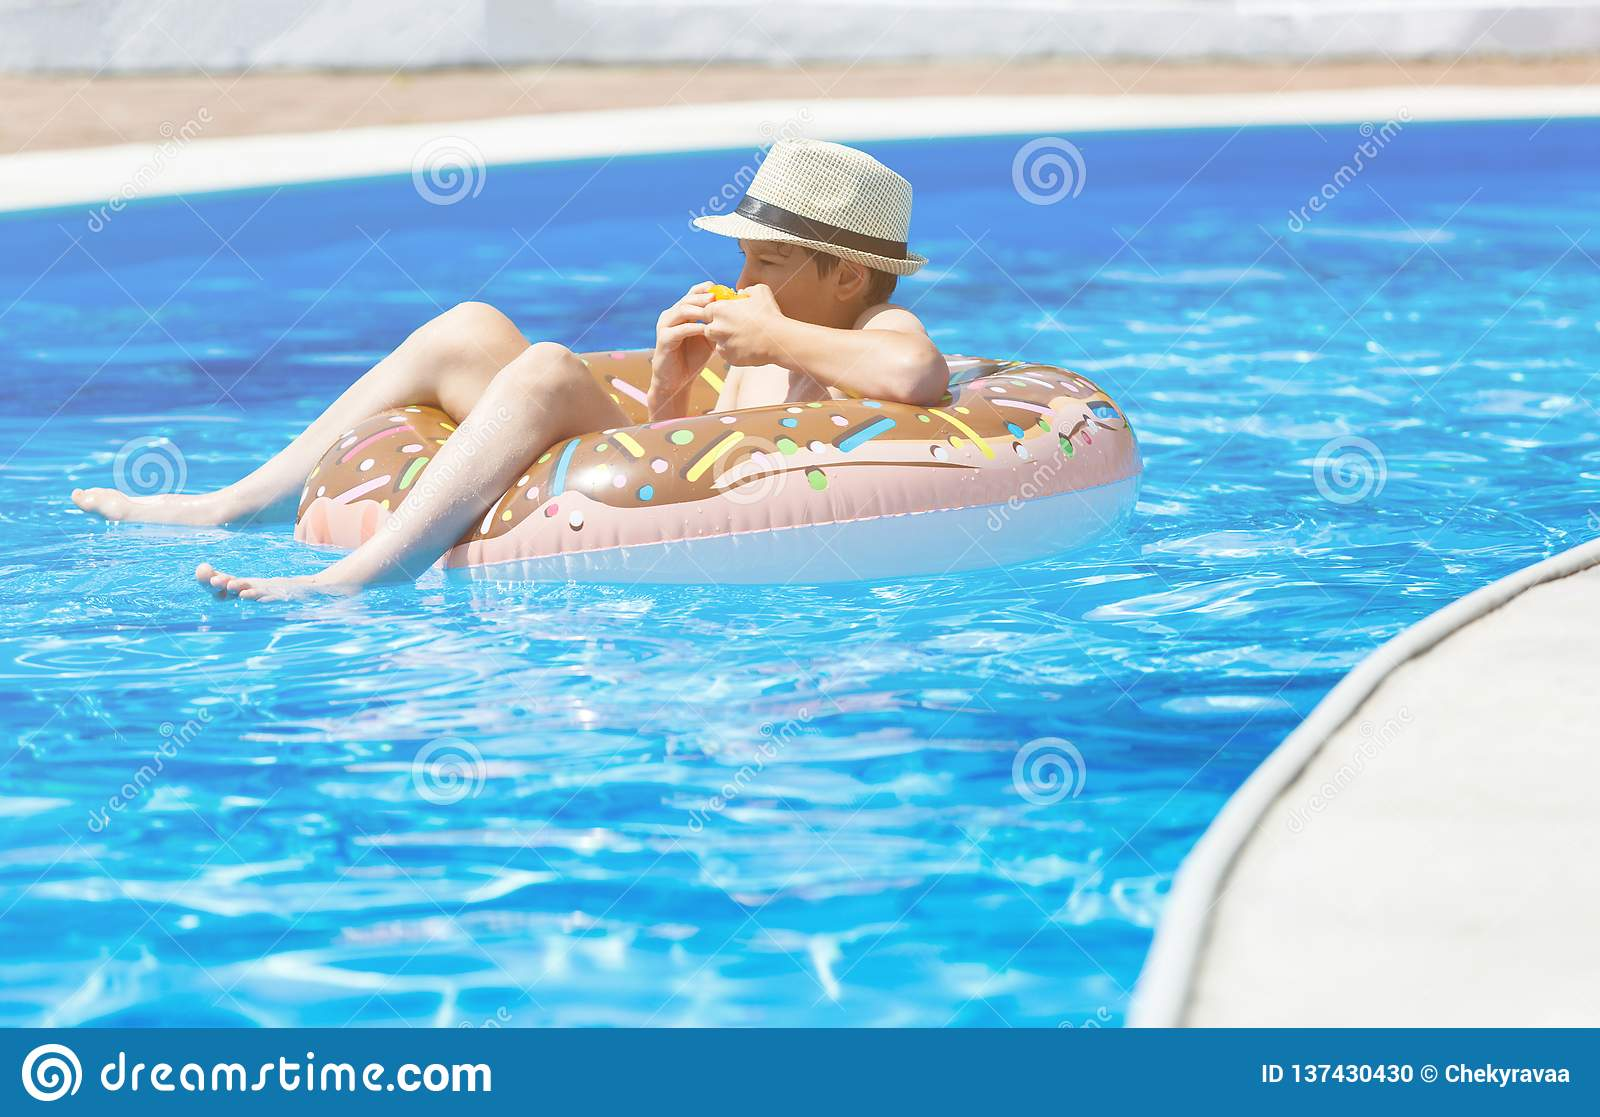 Happy cute little boy teenager lying on inflatable donut ring with orange in swimming pool. Active games on water, vacation